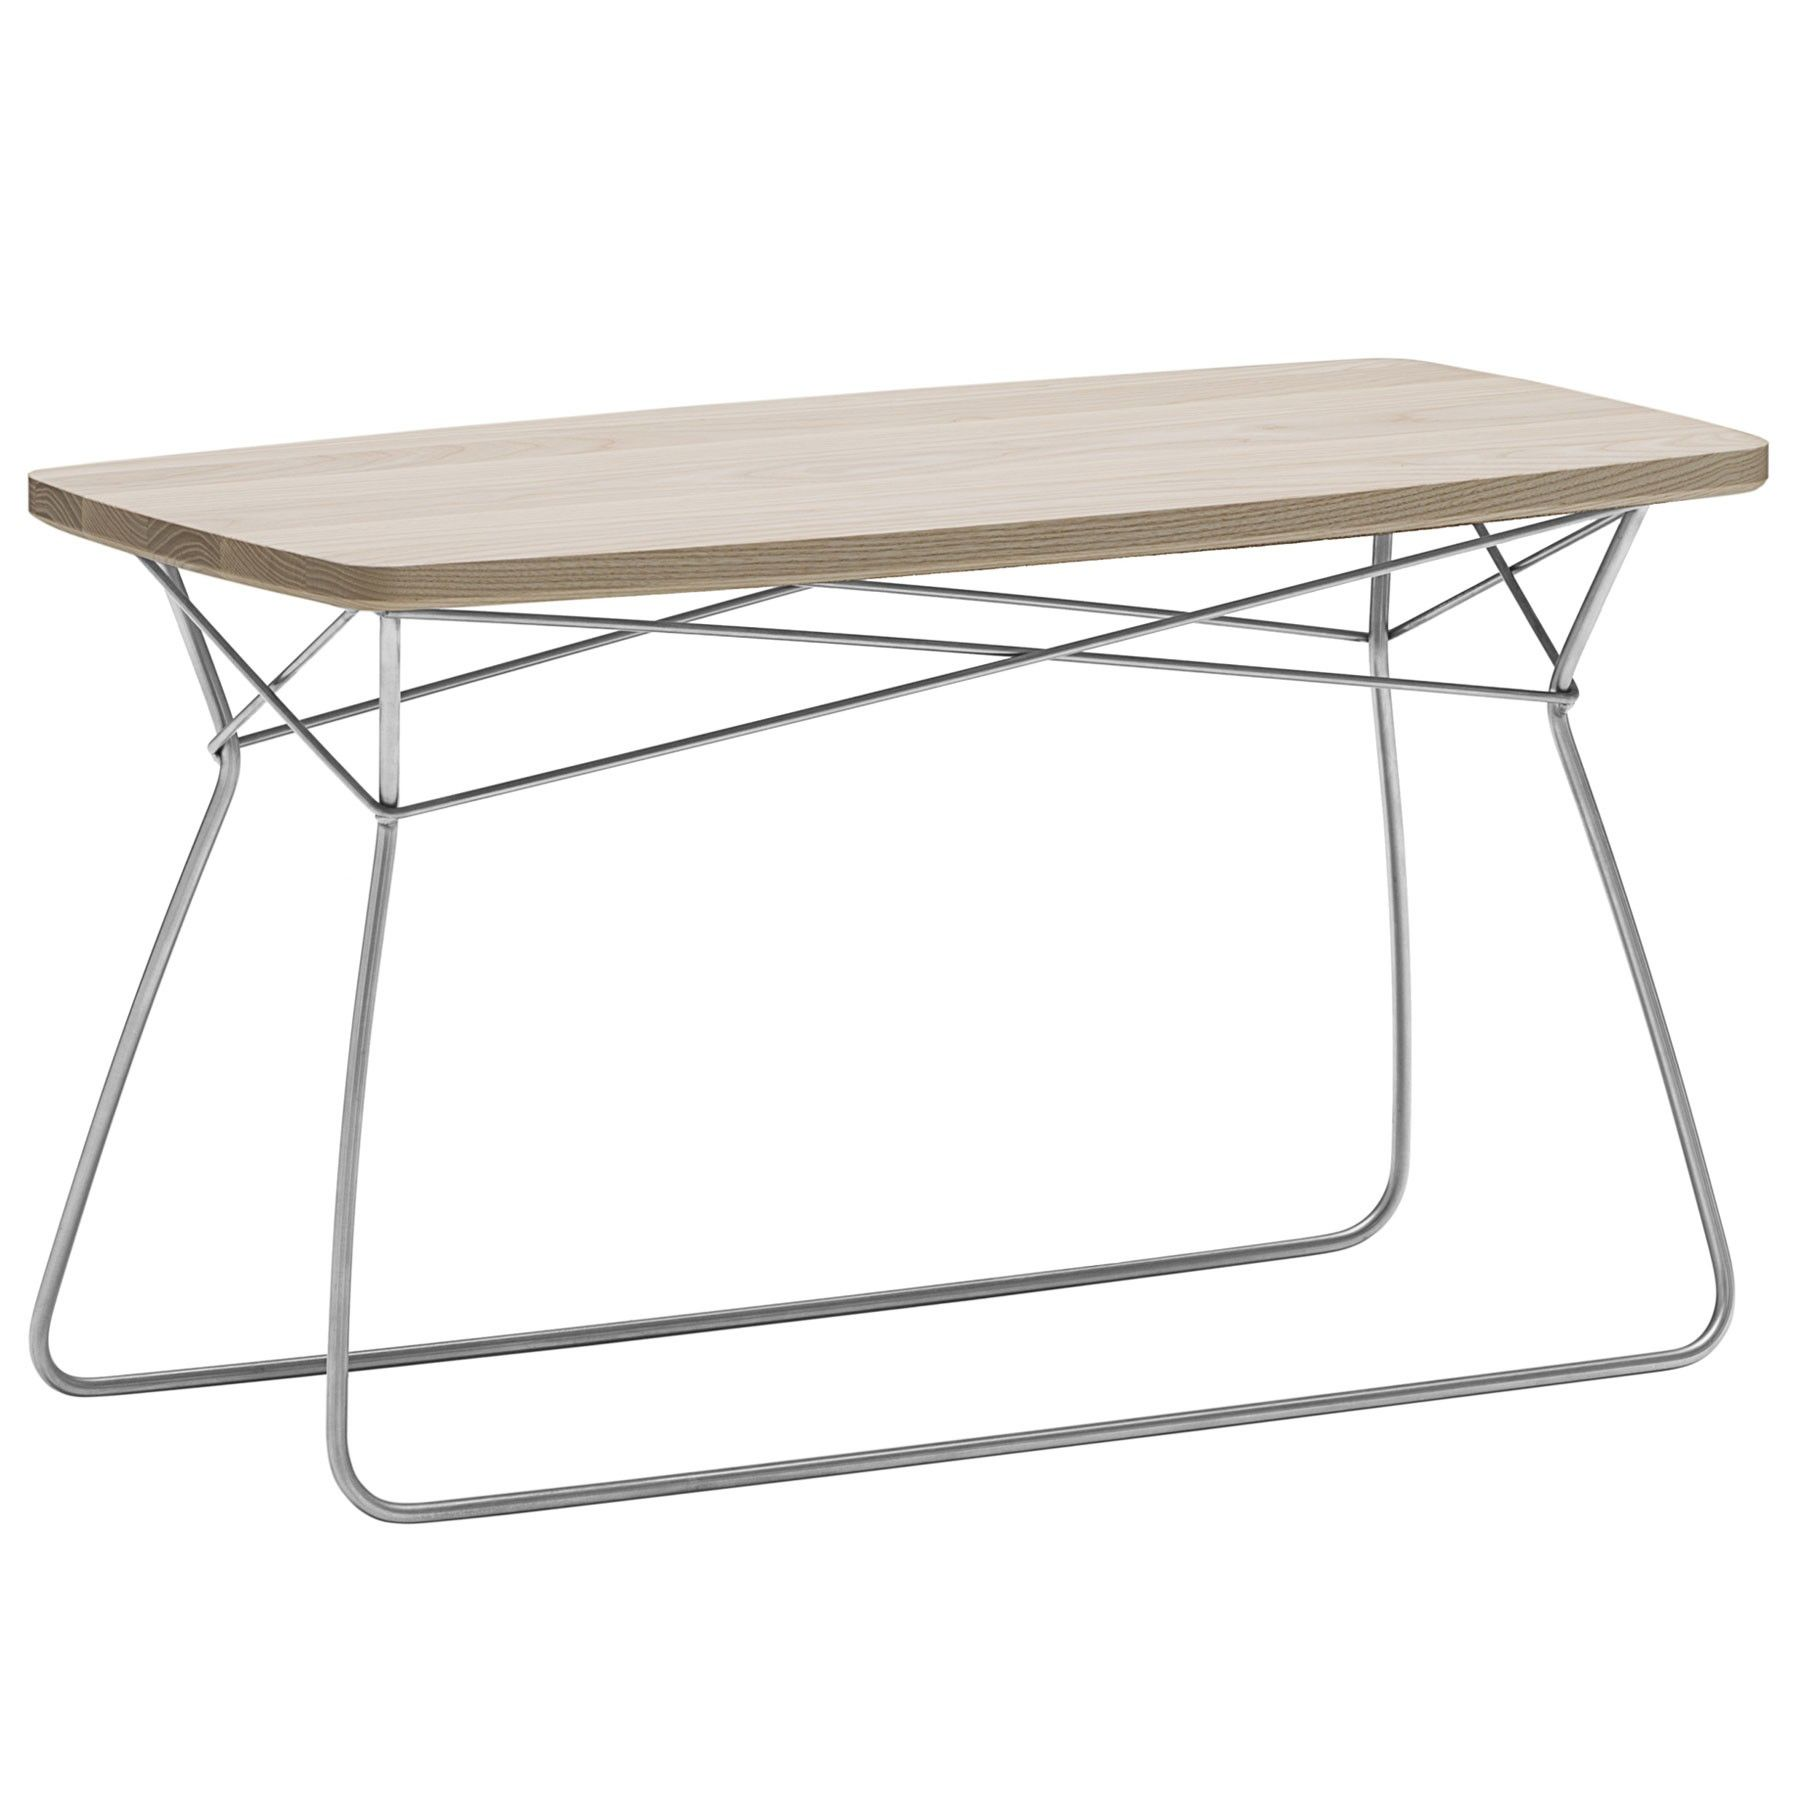 Salontafel Design On Stock.Design On Stock Dalt Salontafel 75x35 Flinders Verzendt Gratis